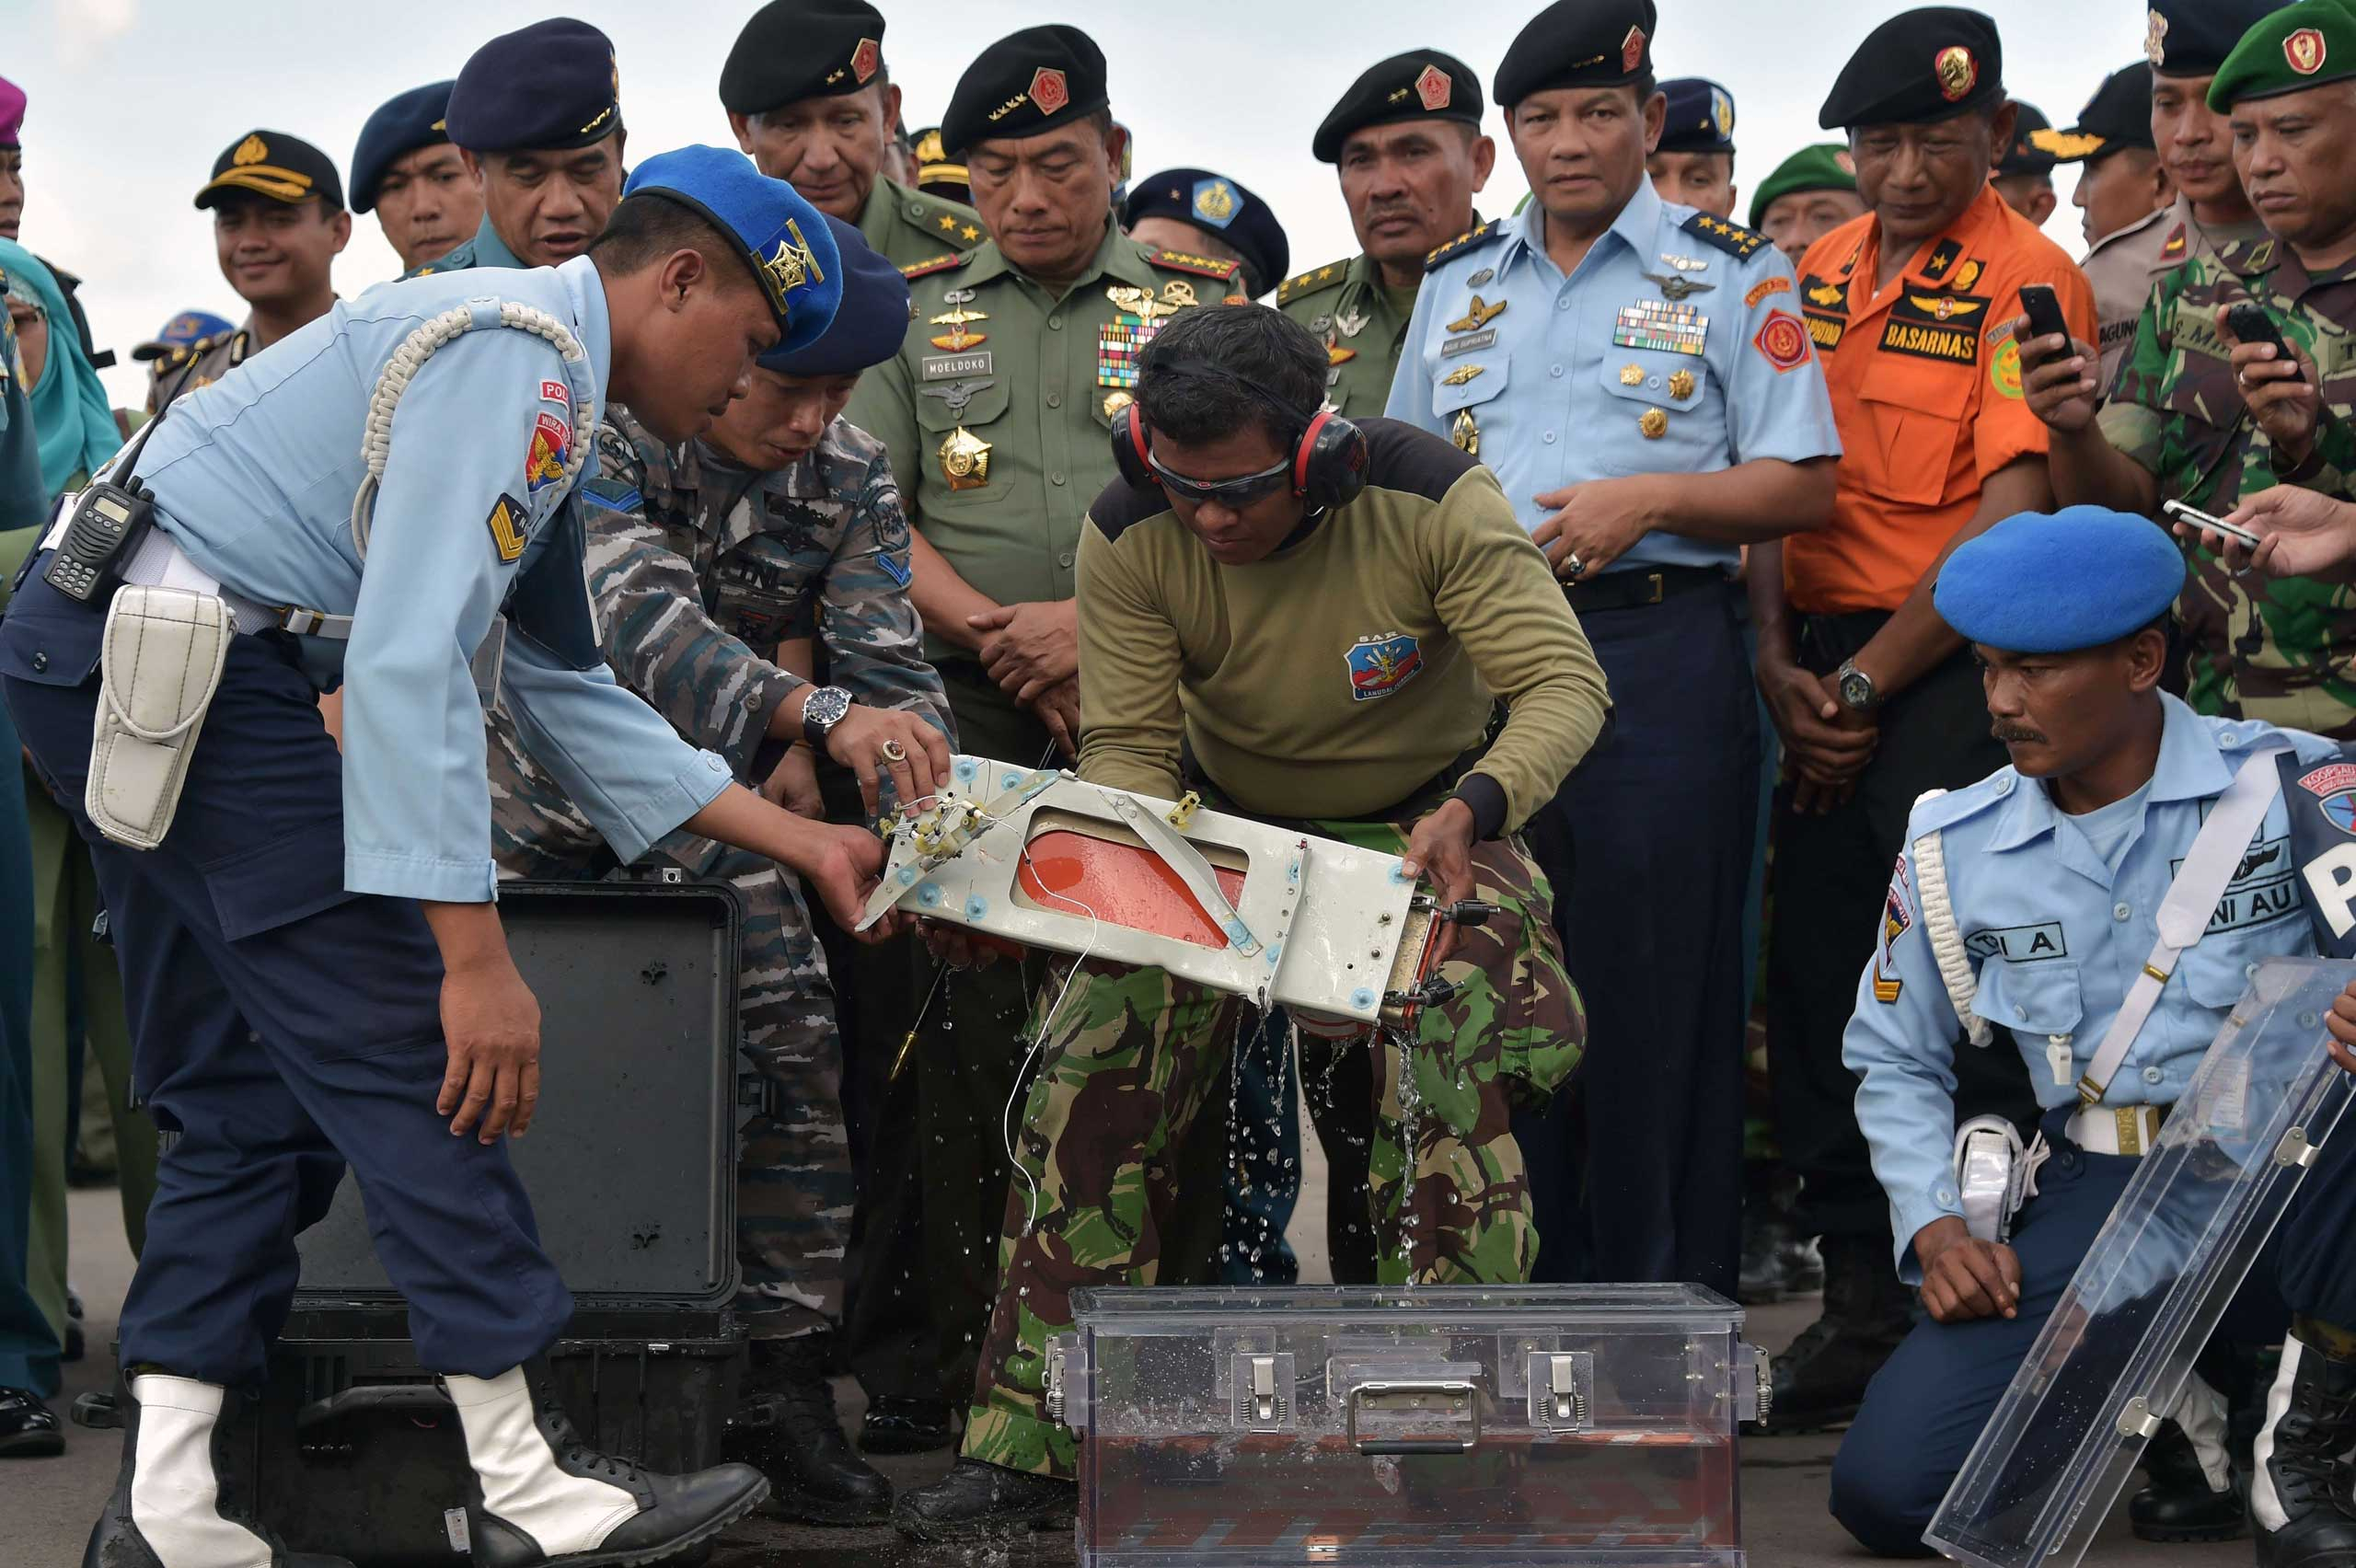 Jan. 12, 2015. Indonesian officers move the flight data recorder of the AirAsia flight QZ8501 that went down with 162 passengers into a suitable protective transportation case in the town of Pangkalan Bun in Indonesia after it was retrieved from the Java Sea.